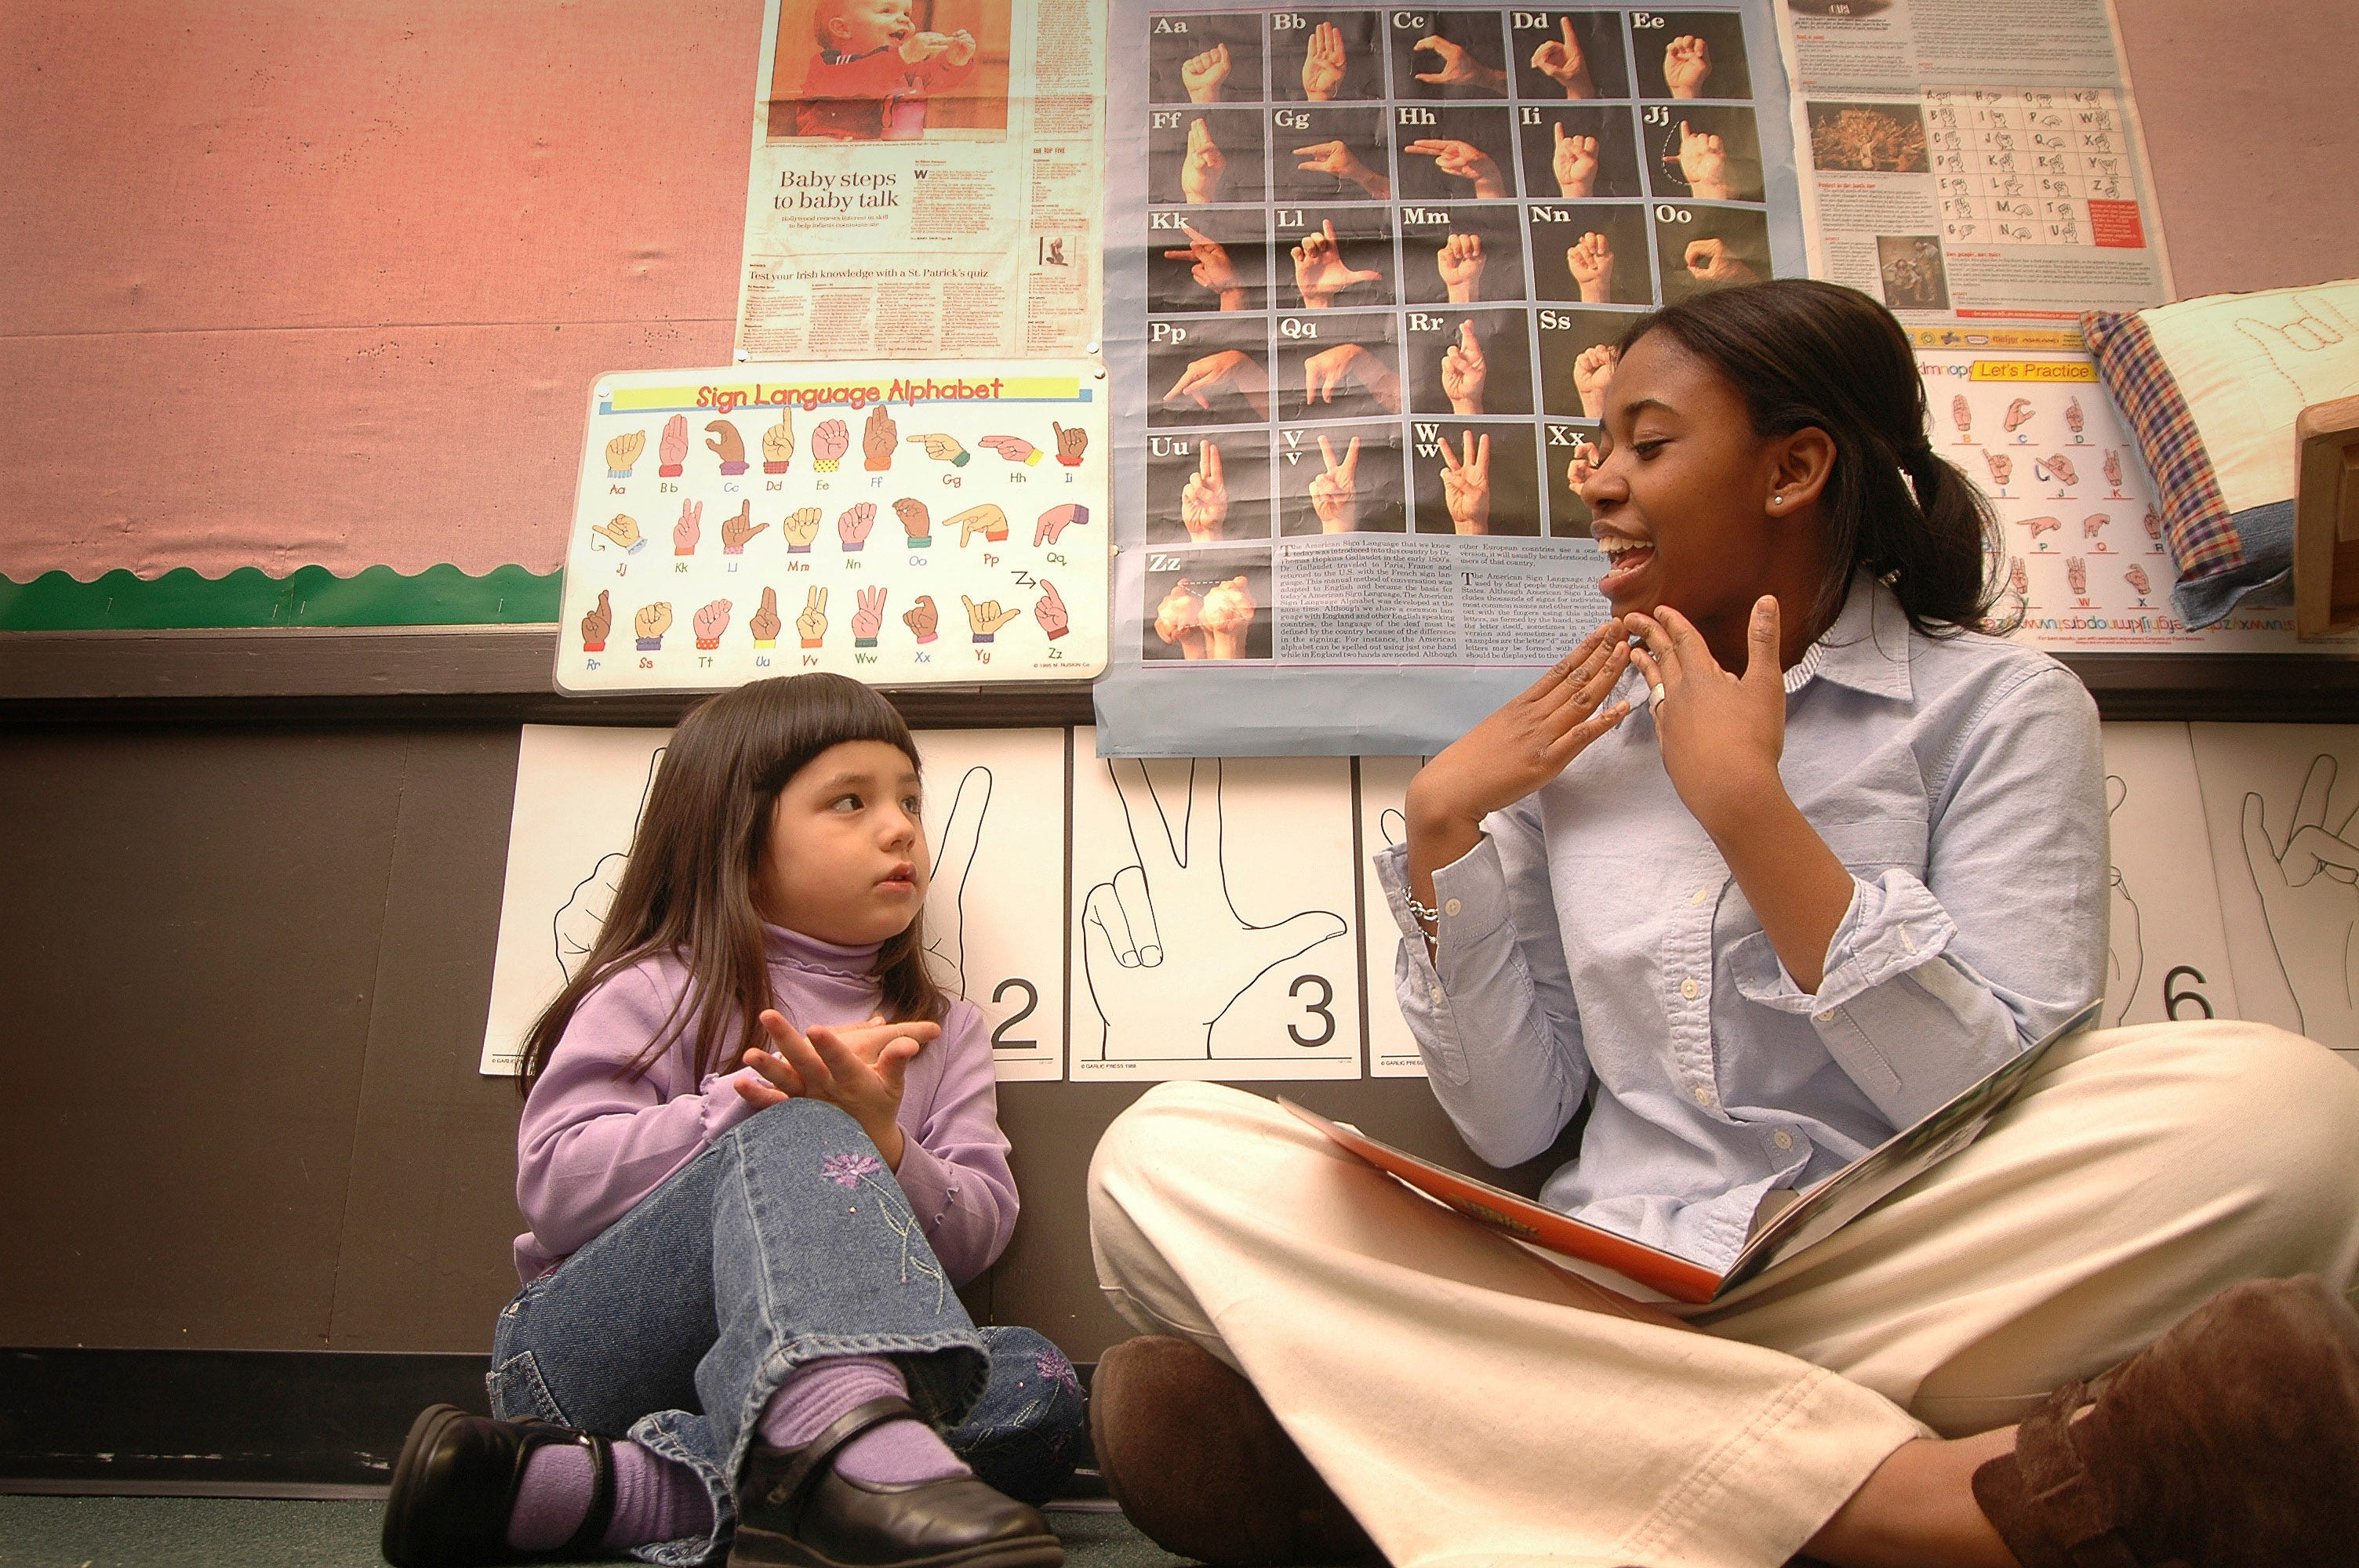 Olivia Nathan won a Jefferson Award in 2005 for her work with hearing impaired people.